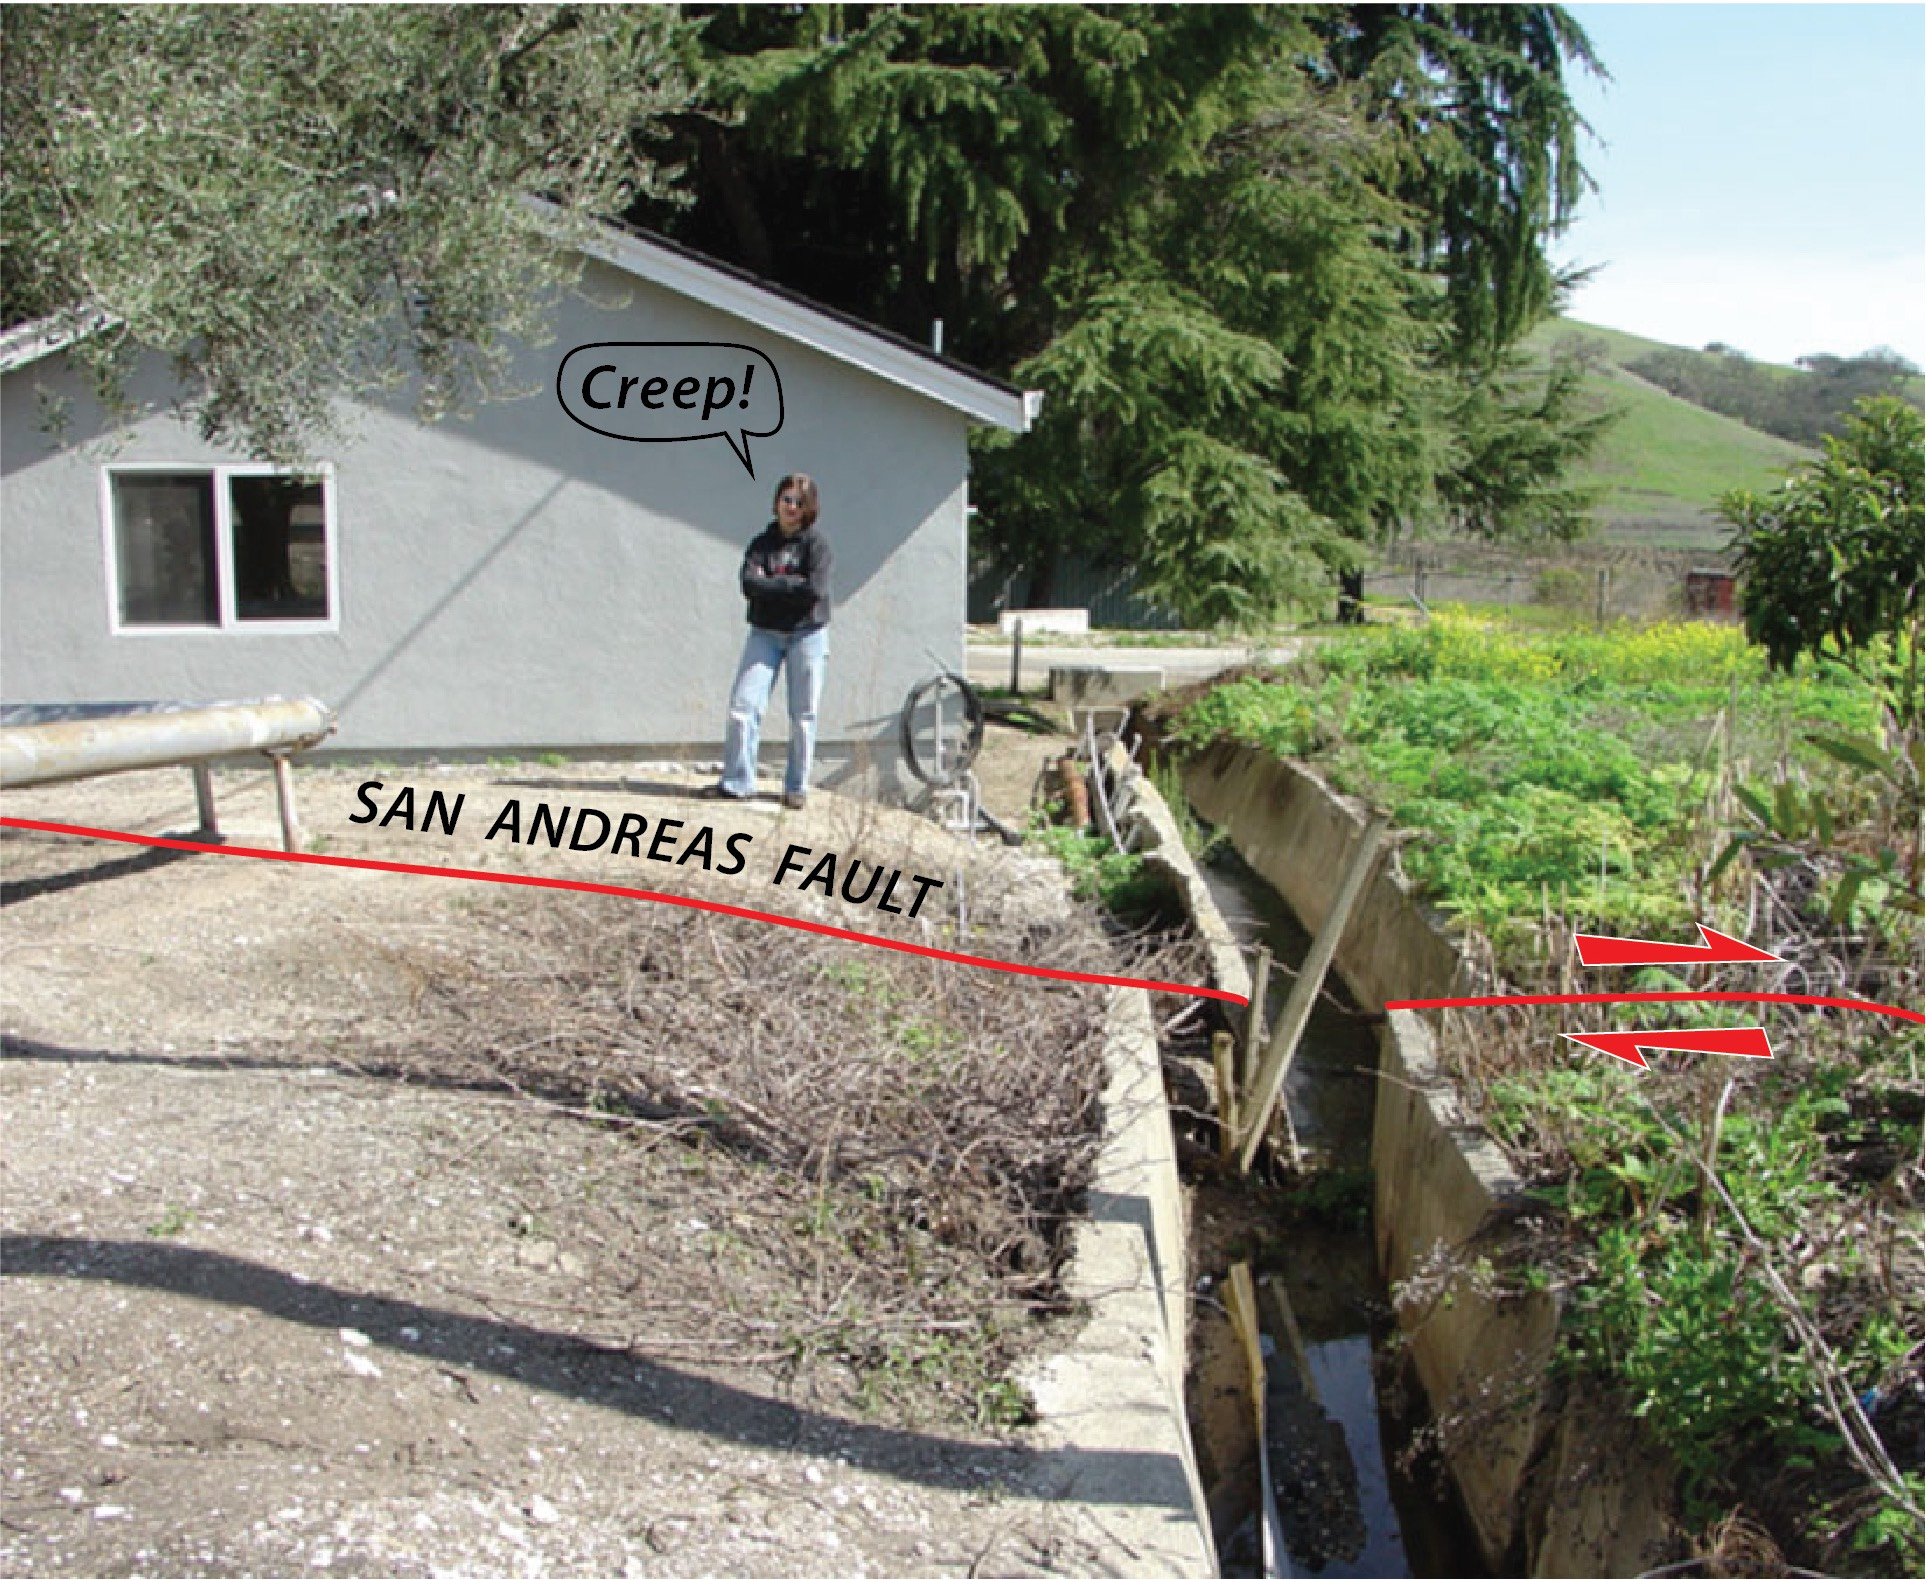 The San Andreas Fault cuts through DeRose Winery in Hollister, CA. The resulting creep (steady slip) has progressively offset this culvert over the past 30 years. (Photo from geologycafe.com)